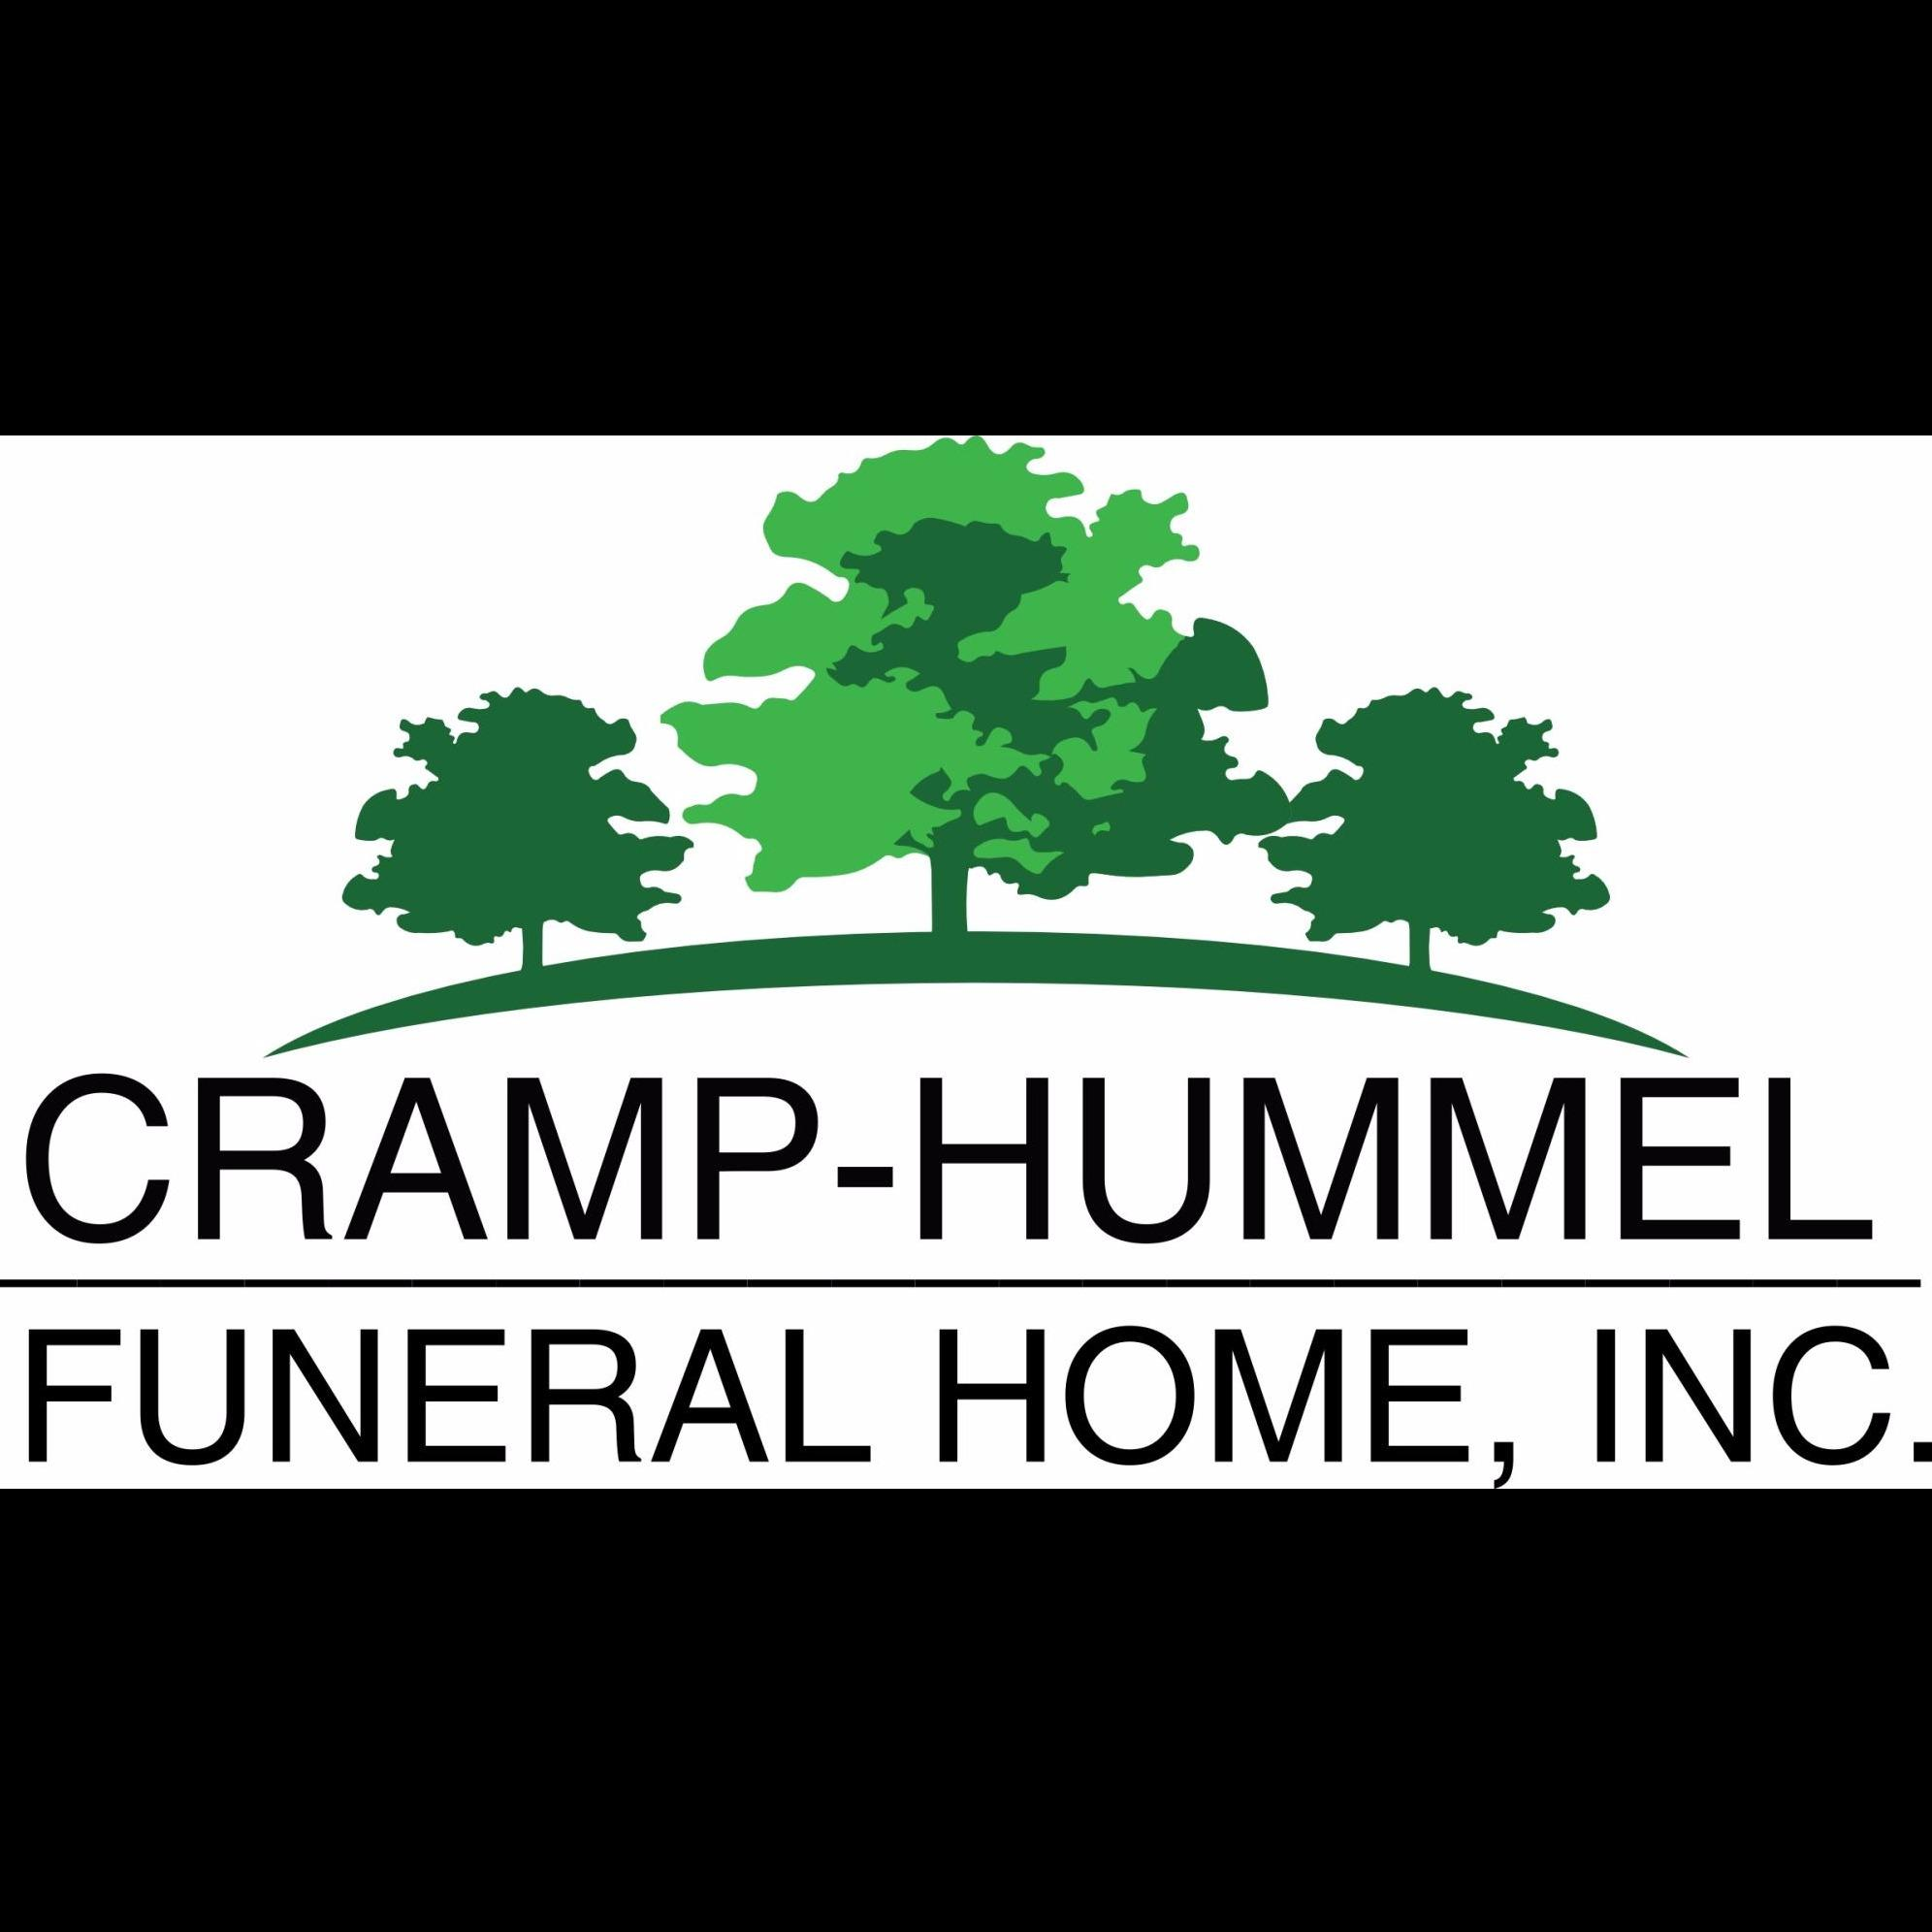 Cramp-Hummel Funeral Home, Inc. - Reading, PA - Funeral Homes & Services